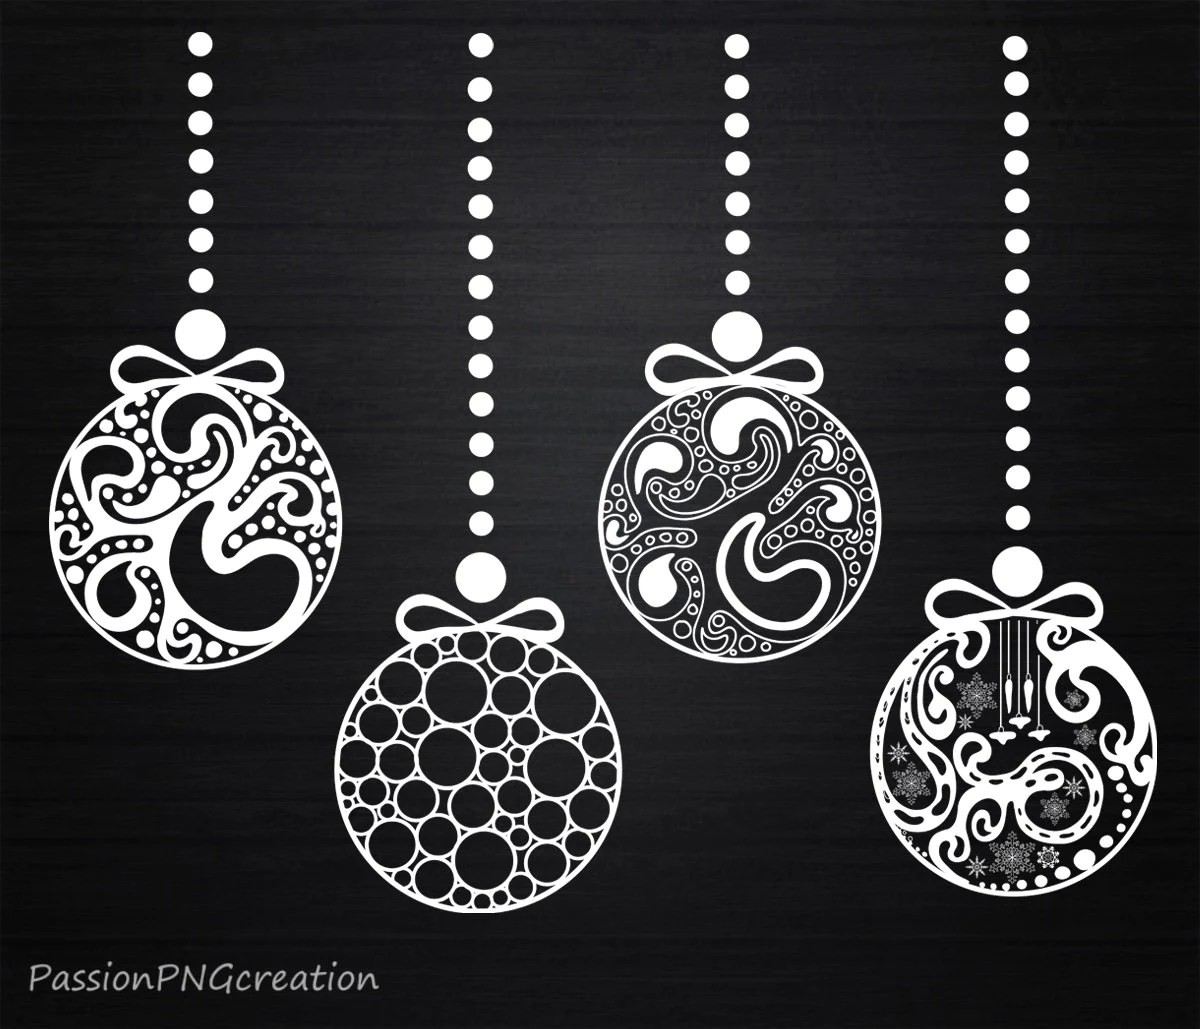 Christmas Ornament Clip Art Black And White Christmas Ornaments Clipart Decorations Xmas Vintage